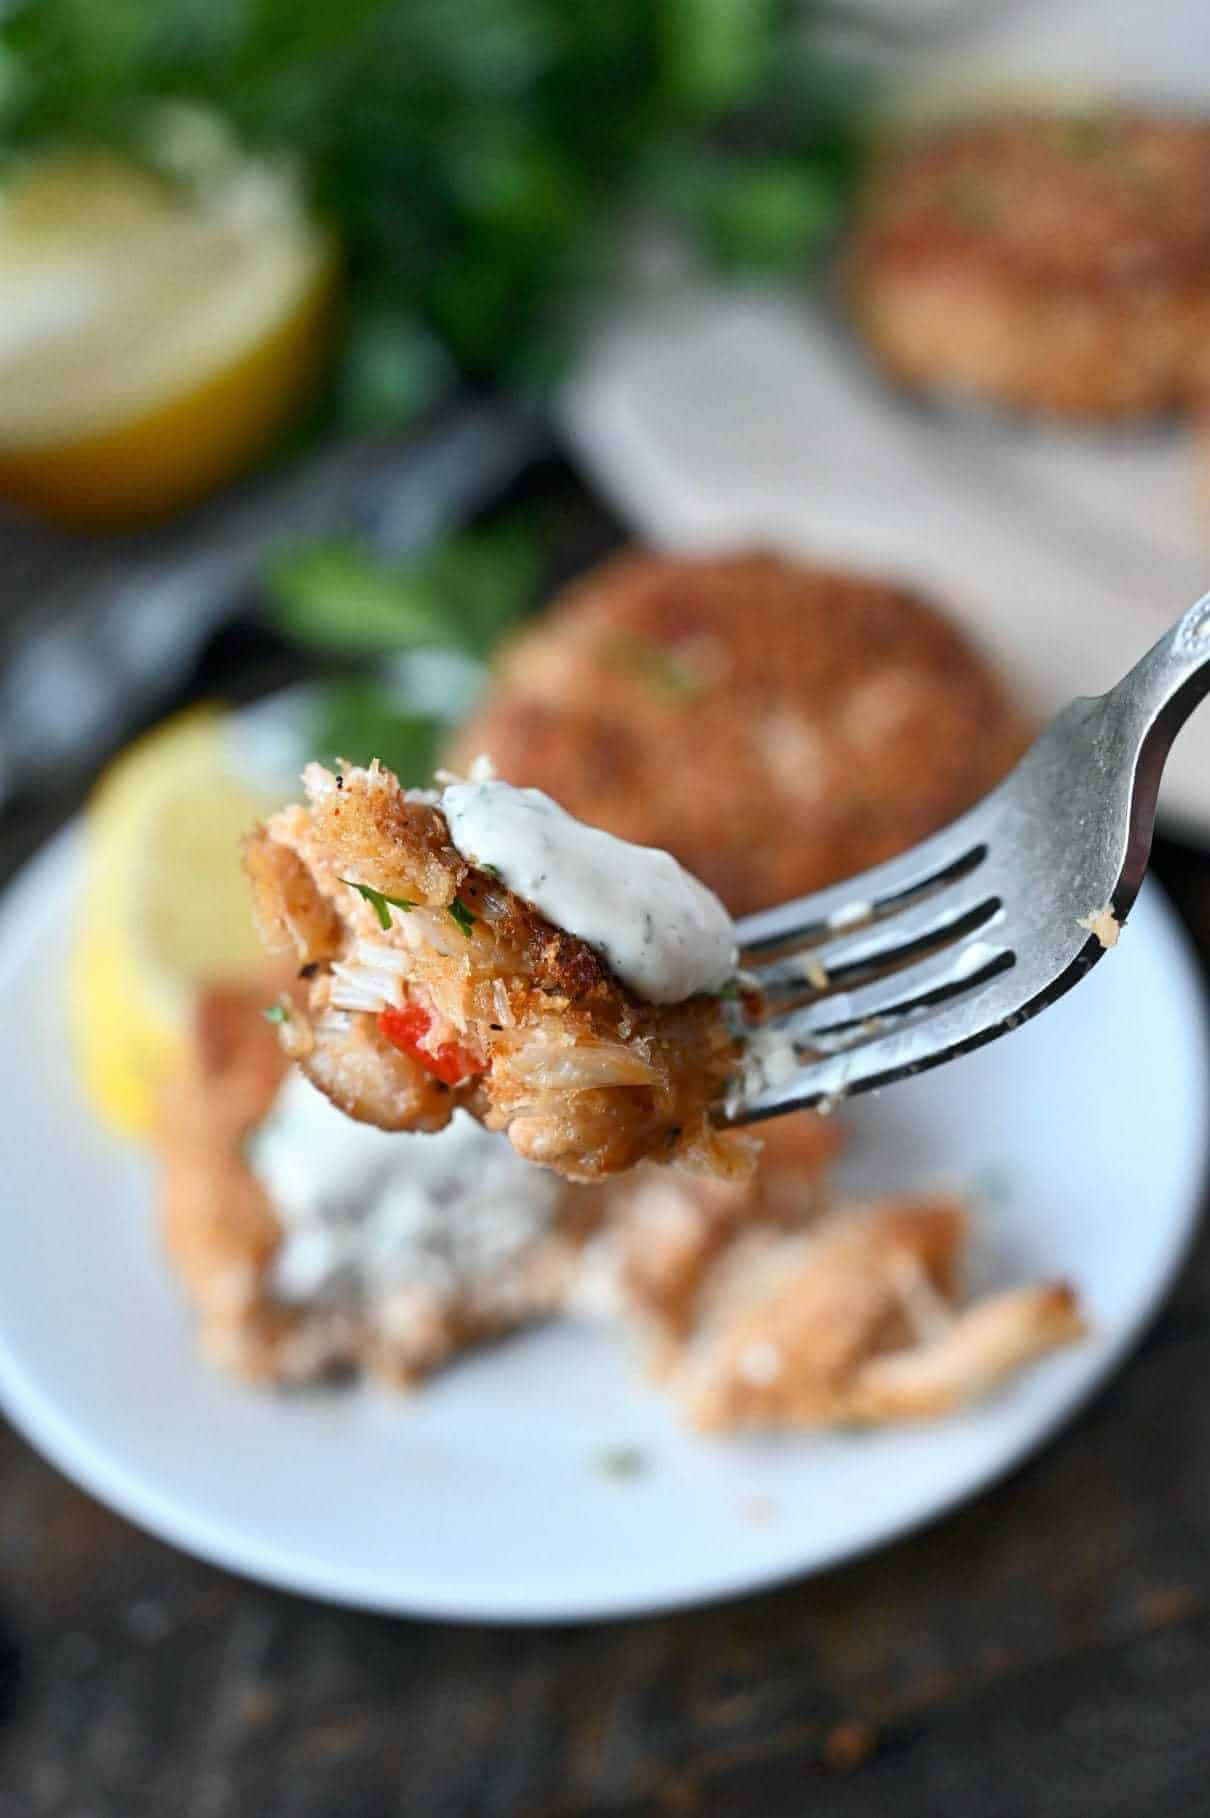 A bite of crab cake and a dollop of lemon dill sauce on a fork.